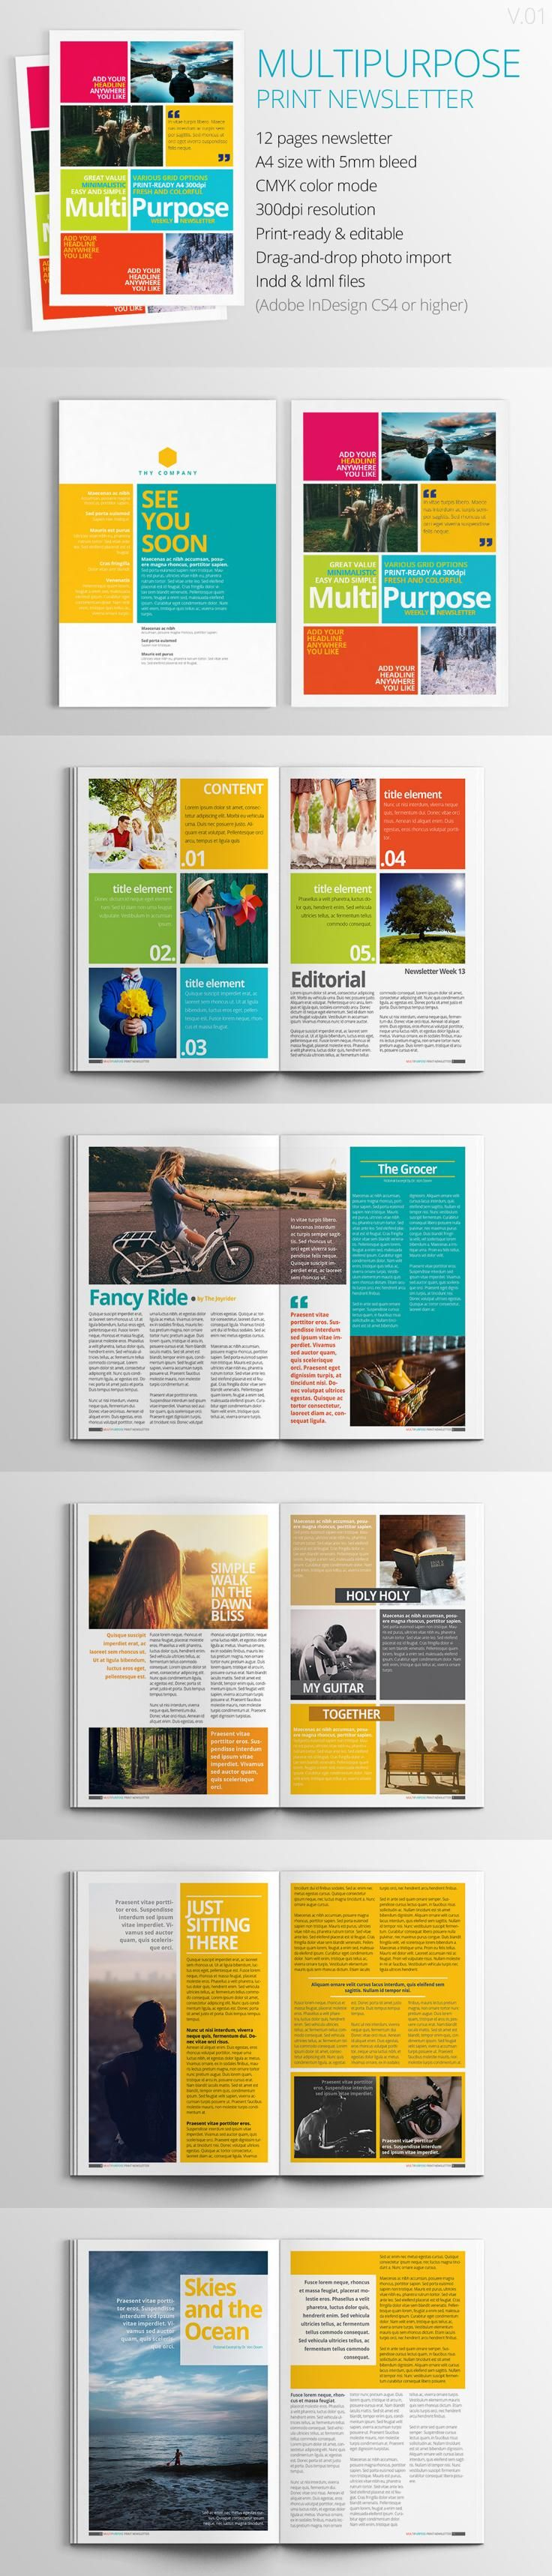 903 best design images on pinterest editorial design layout